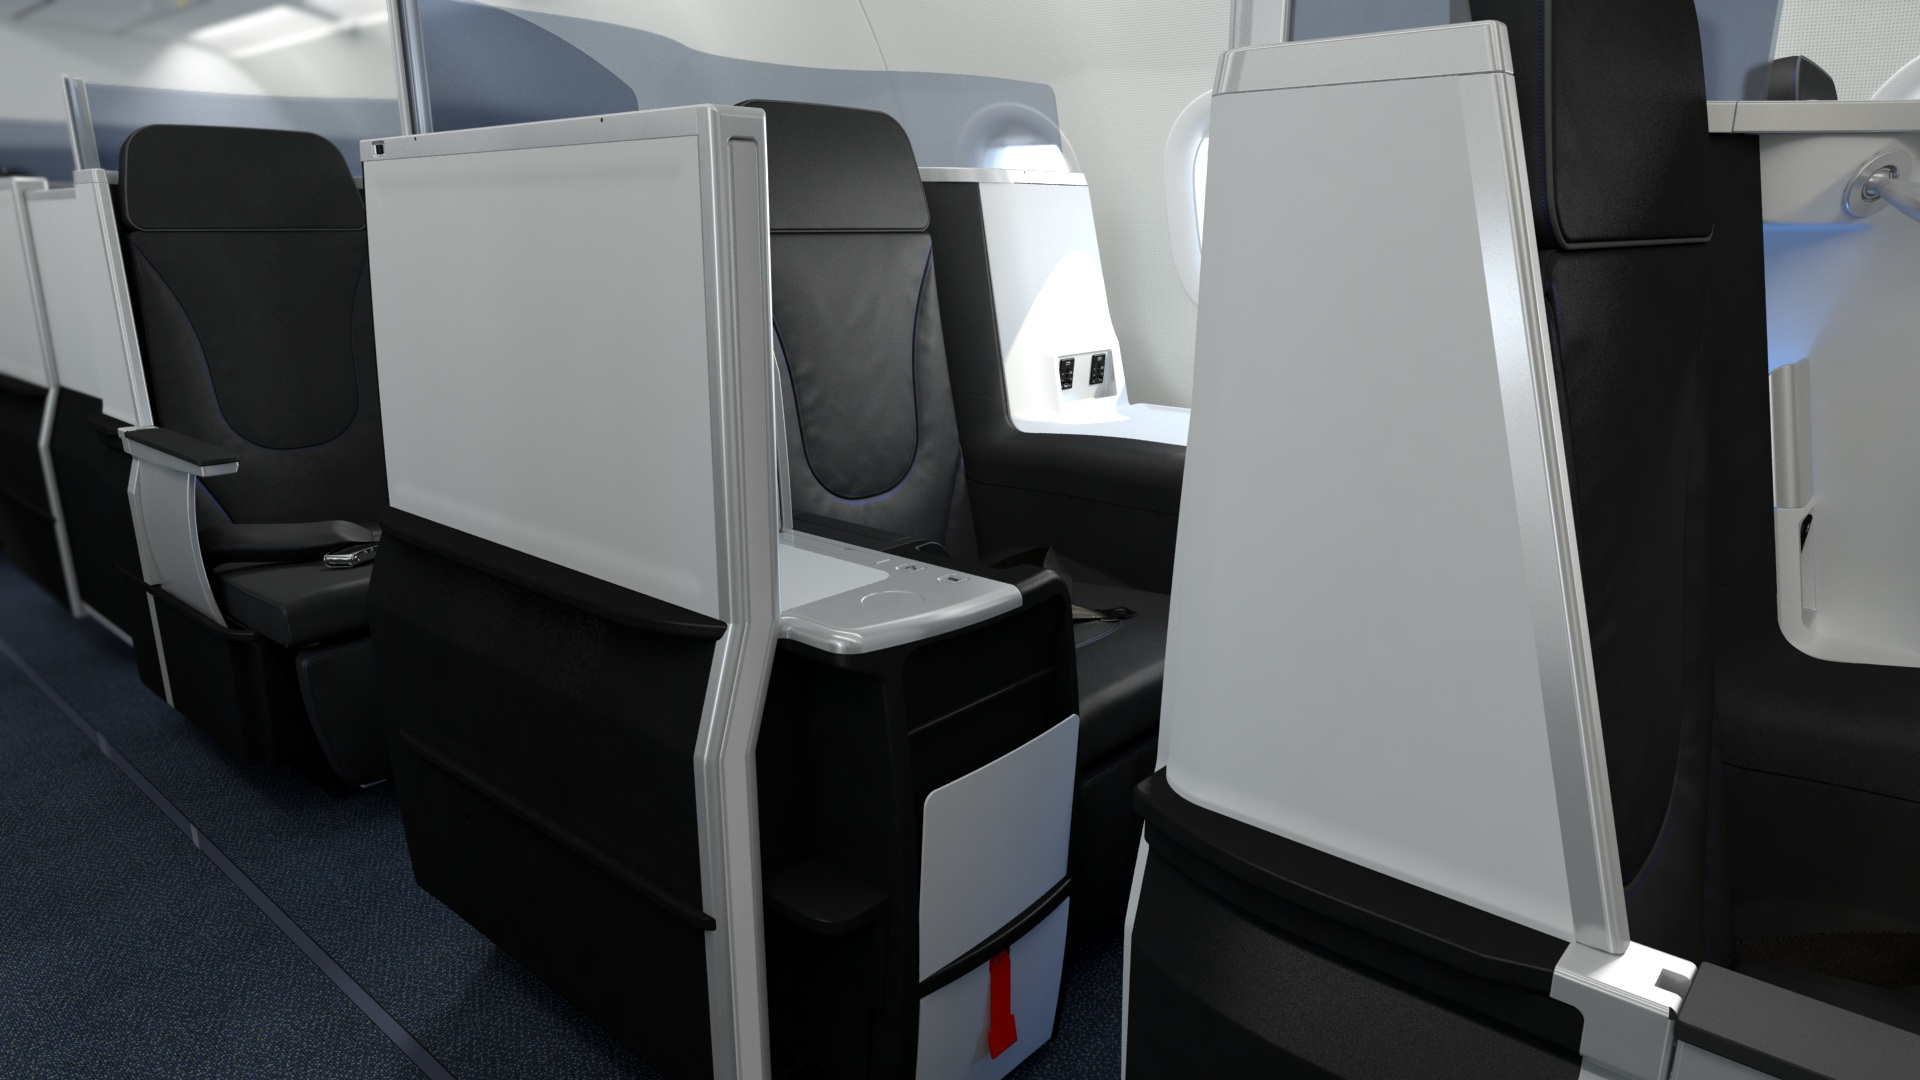 The seats were designed by Northern Ireland-based Thompson Aero Seating.